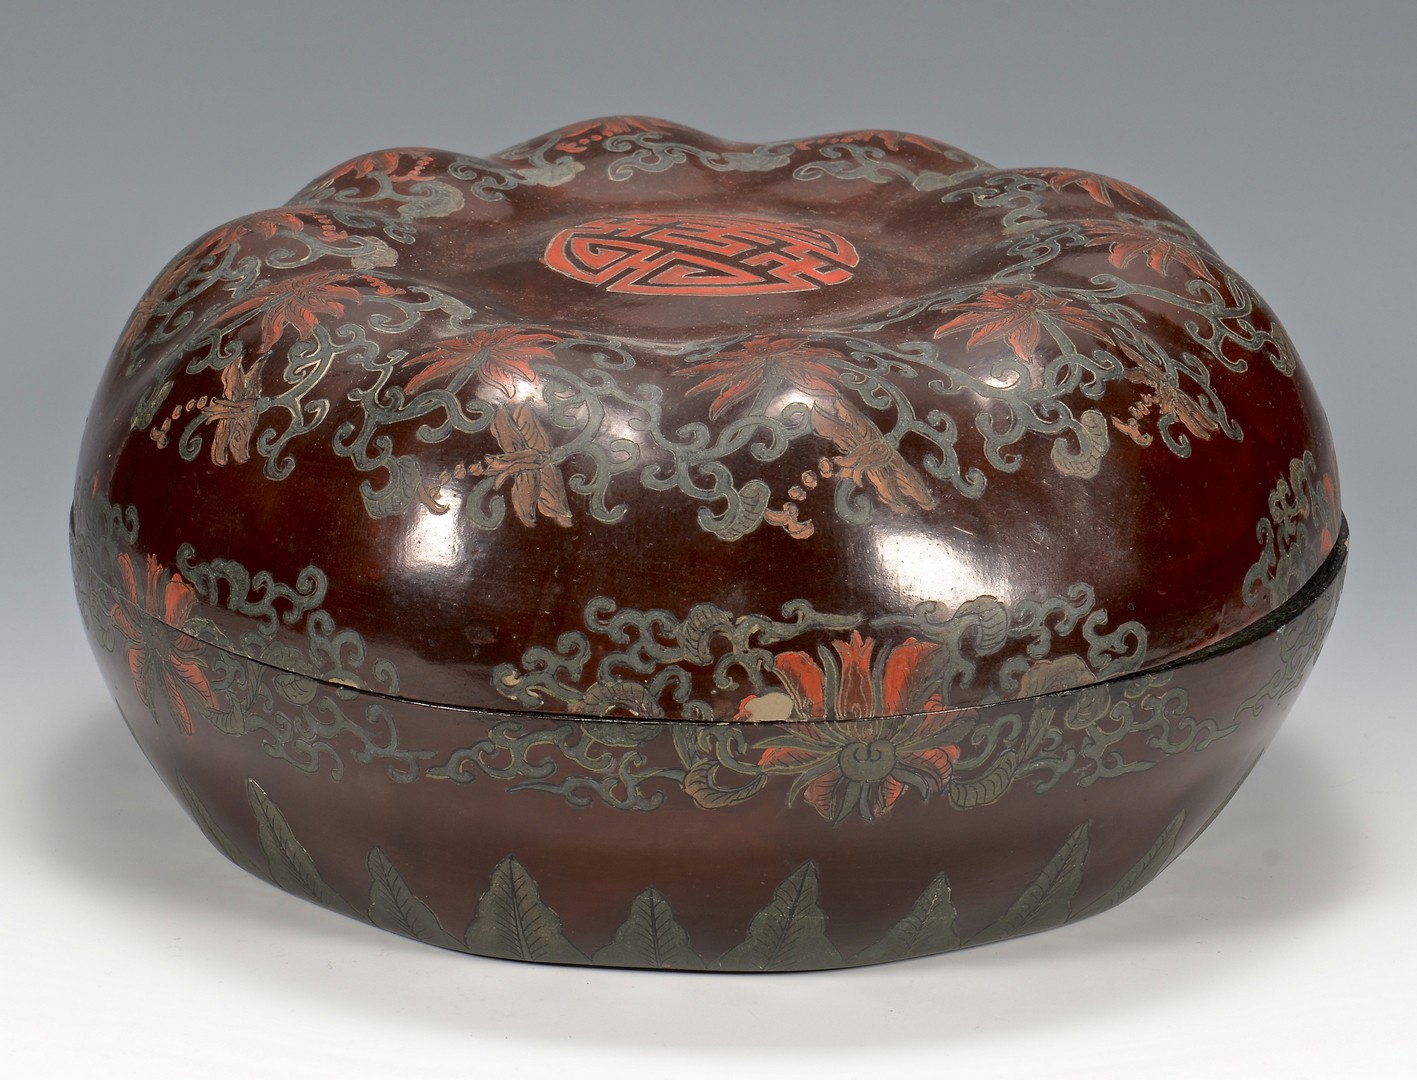 Lot 787: Group of 5 Asian Decorative Items